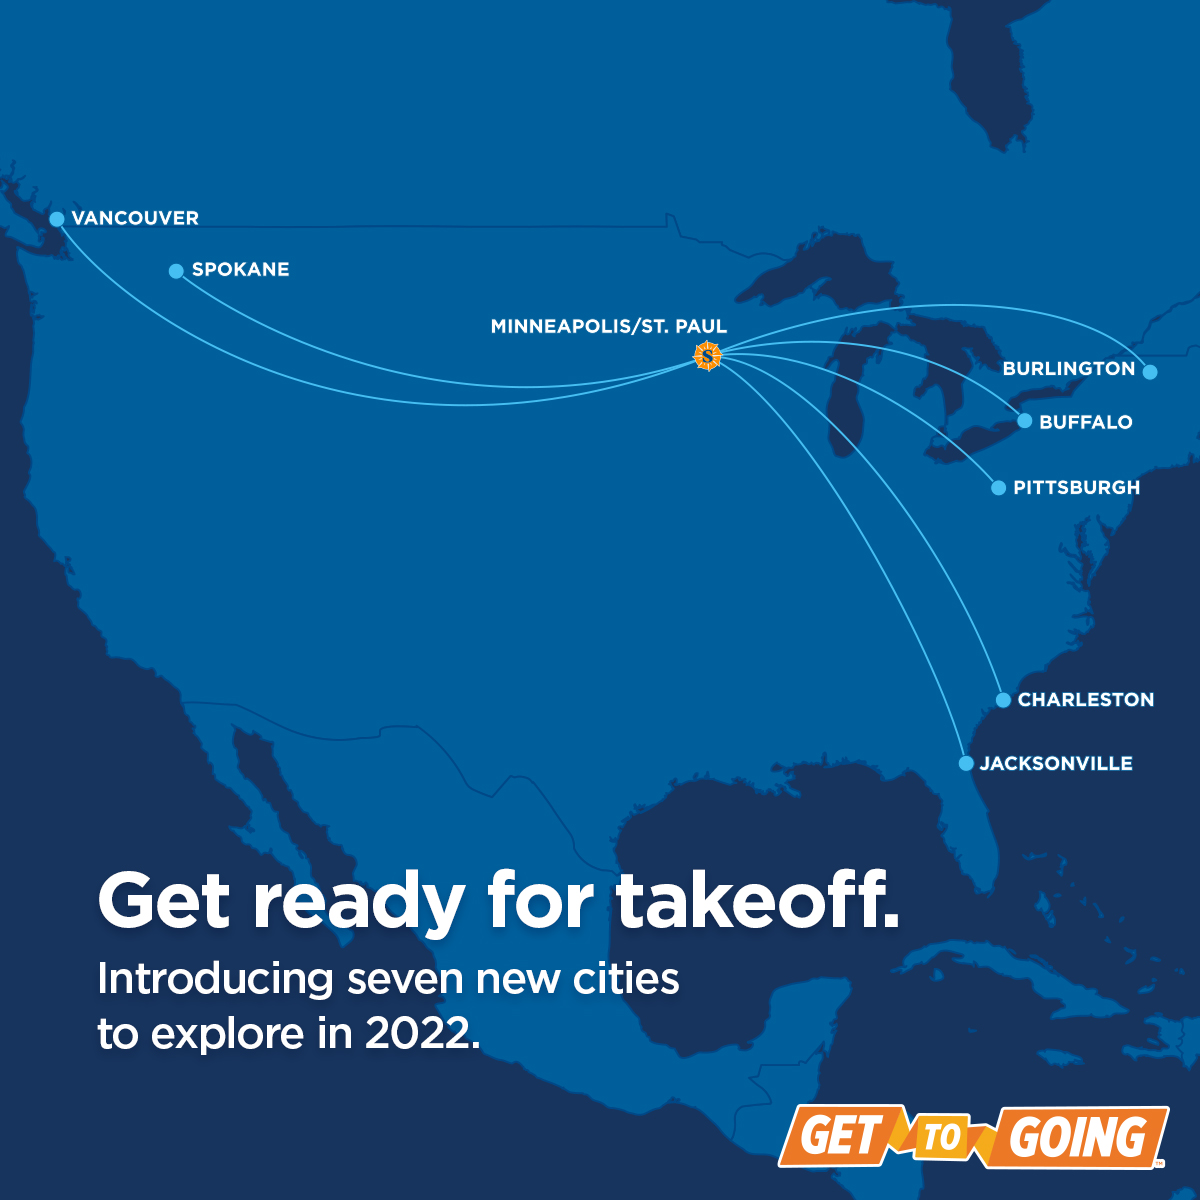 ✈️New Service Announcement! Starting in June 2022, @SunCountryAir will be launching service between Minneapolis (@mspairport) and YVR.